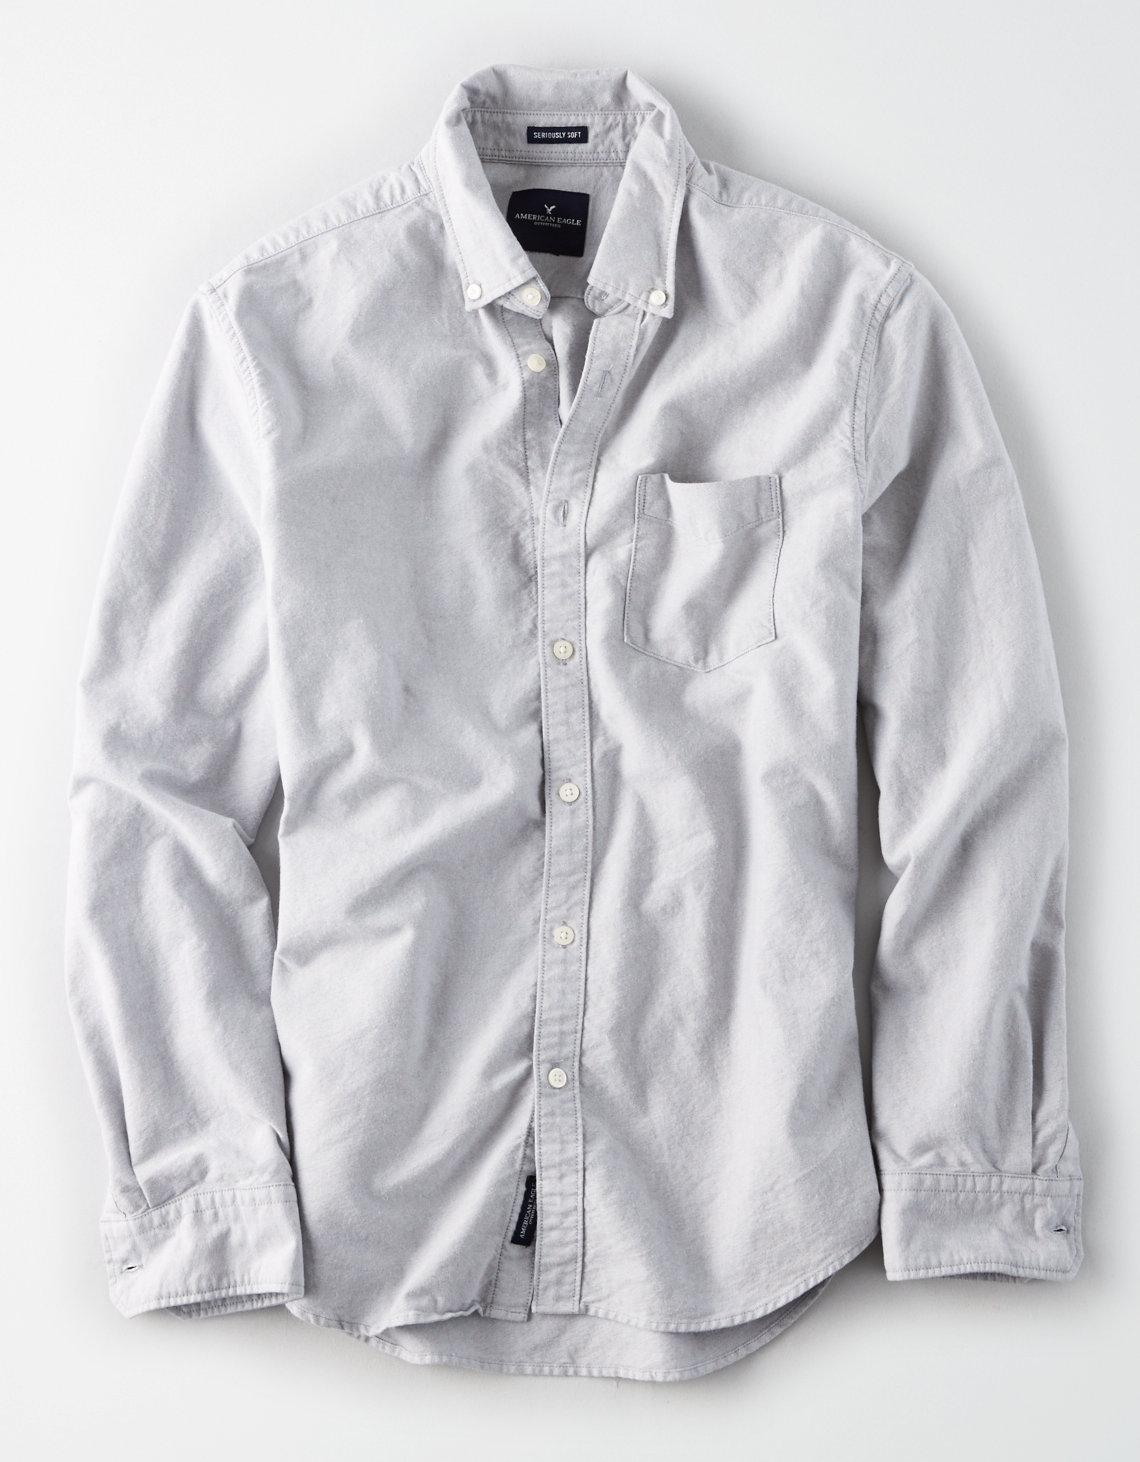 820a3610 American Eagle Ae Classic Button Down Oxford Shirt in Gray for Men ...